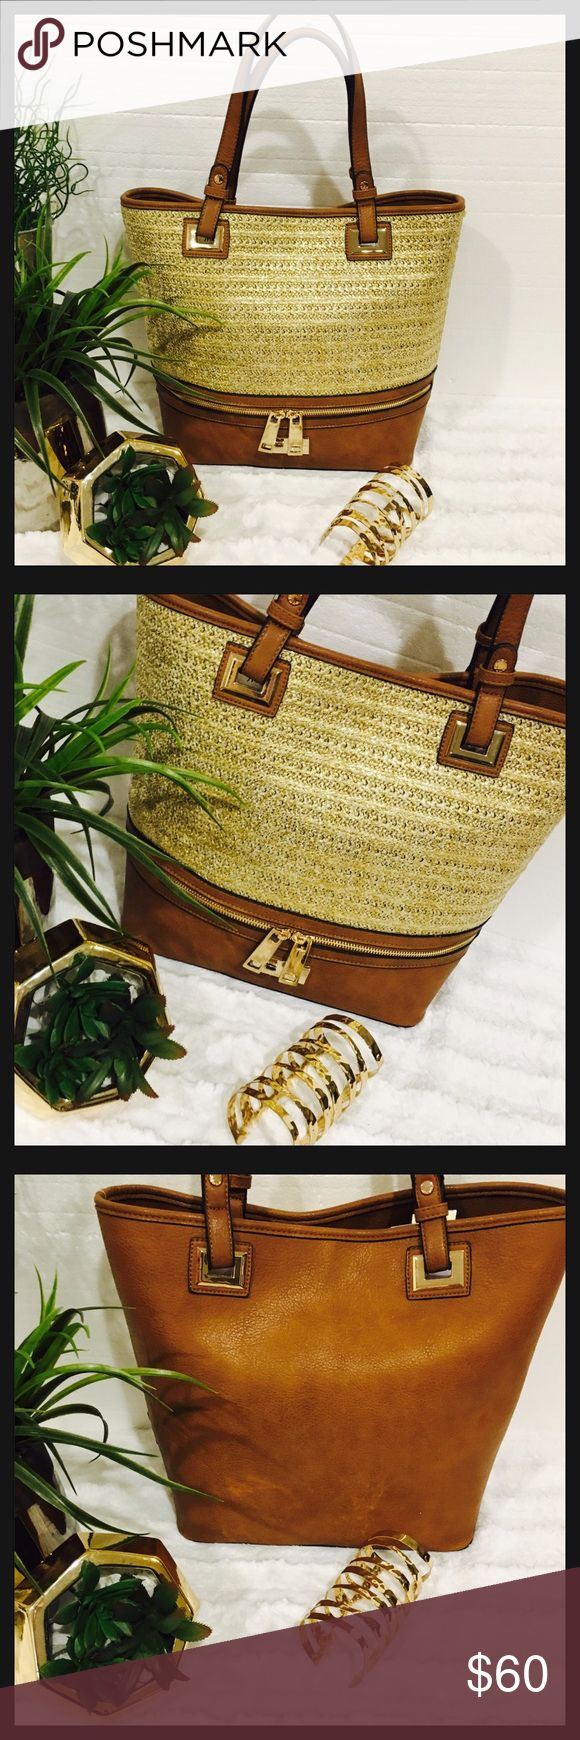 """✨NWT✨Gorgeous Cognac & Gold Tote Bag 🍁 ✨NWT✨Gorgeous Gold & Cognac Tote Bag 🍂🍁 Size Height 12"""" by 17"""" Width Straps 8""""bring large Black Bag inside for extra storage🍁 Dune London Bags Totes"""